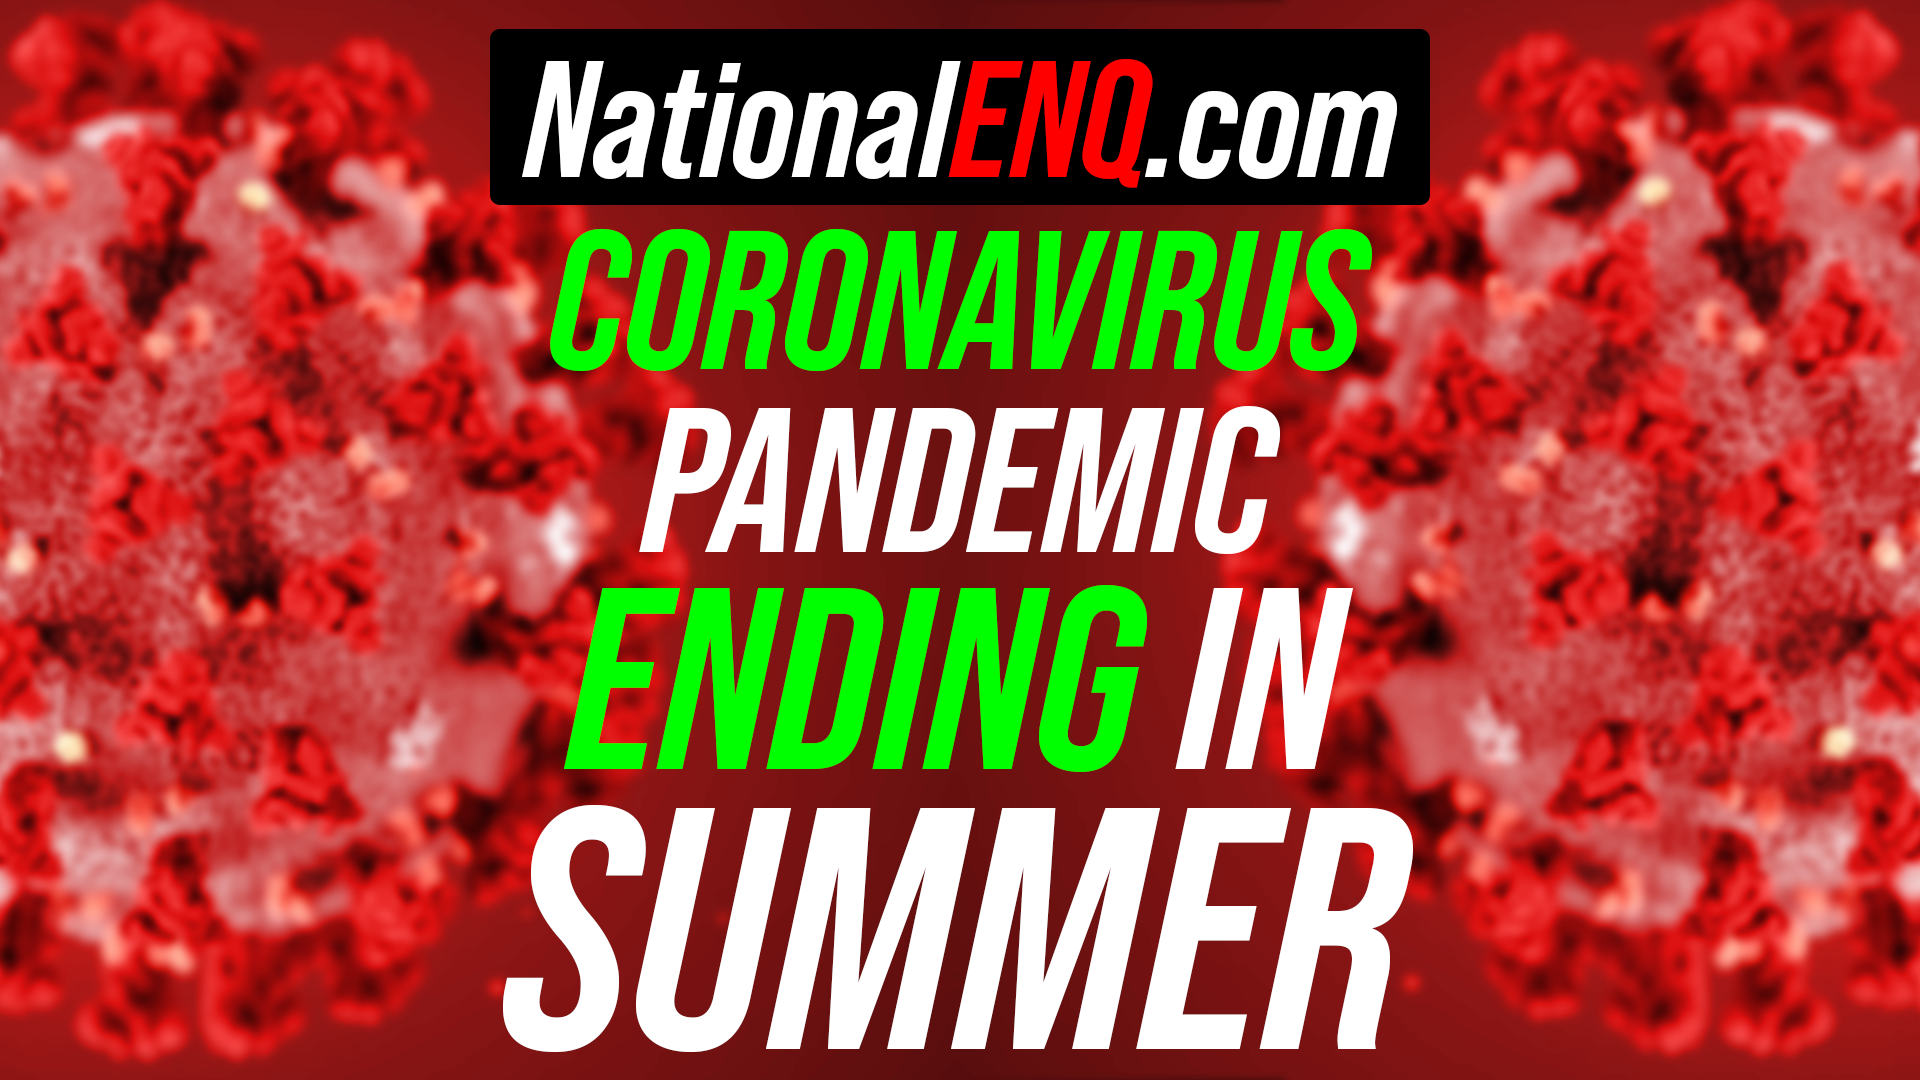 National ENQ Breaking News: Coronavirus (COVID-19) Pandemic End By Summer – Social Distancing Guidelines Extended Until April 30 by President Donald Trump, Cases Soar Past 164,000